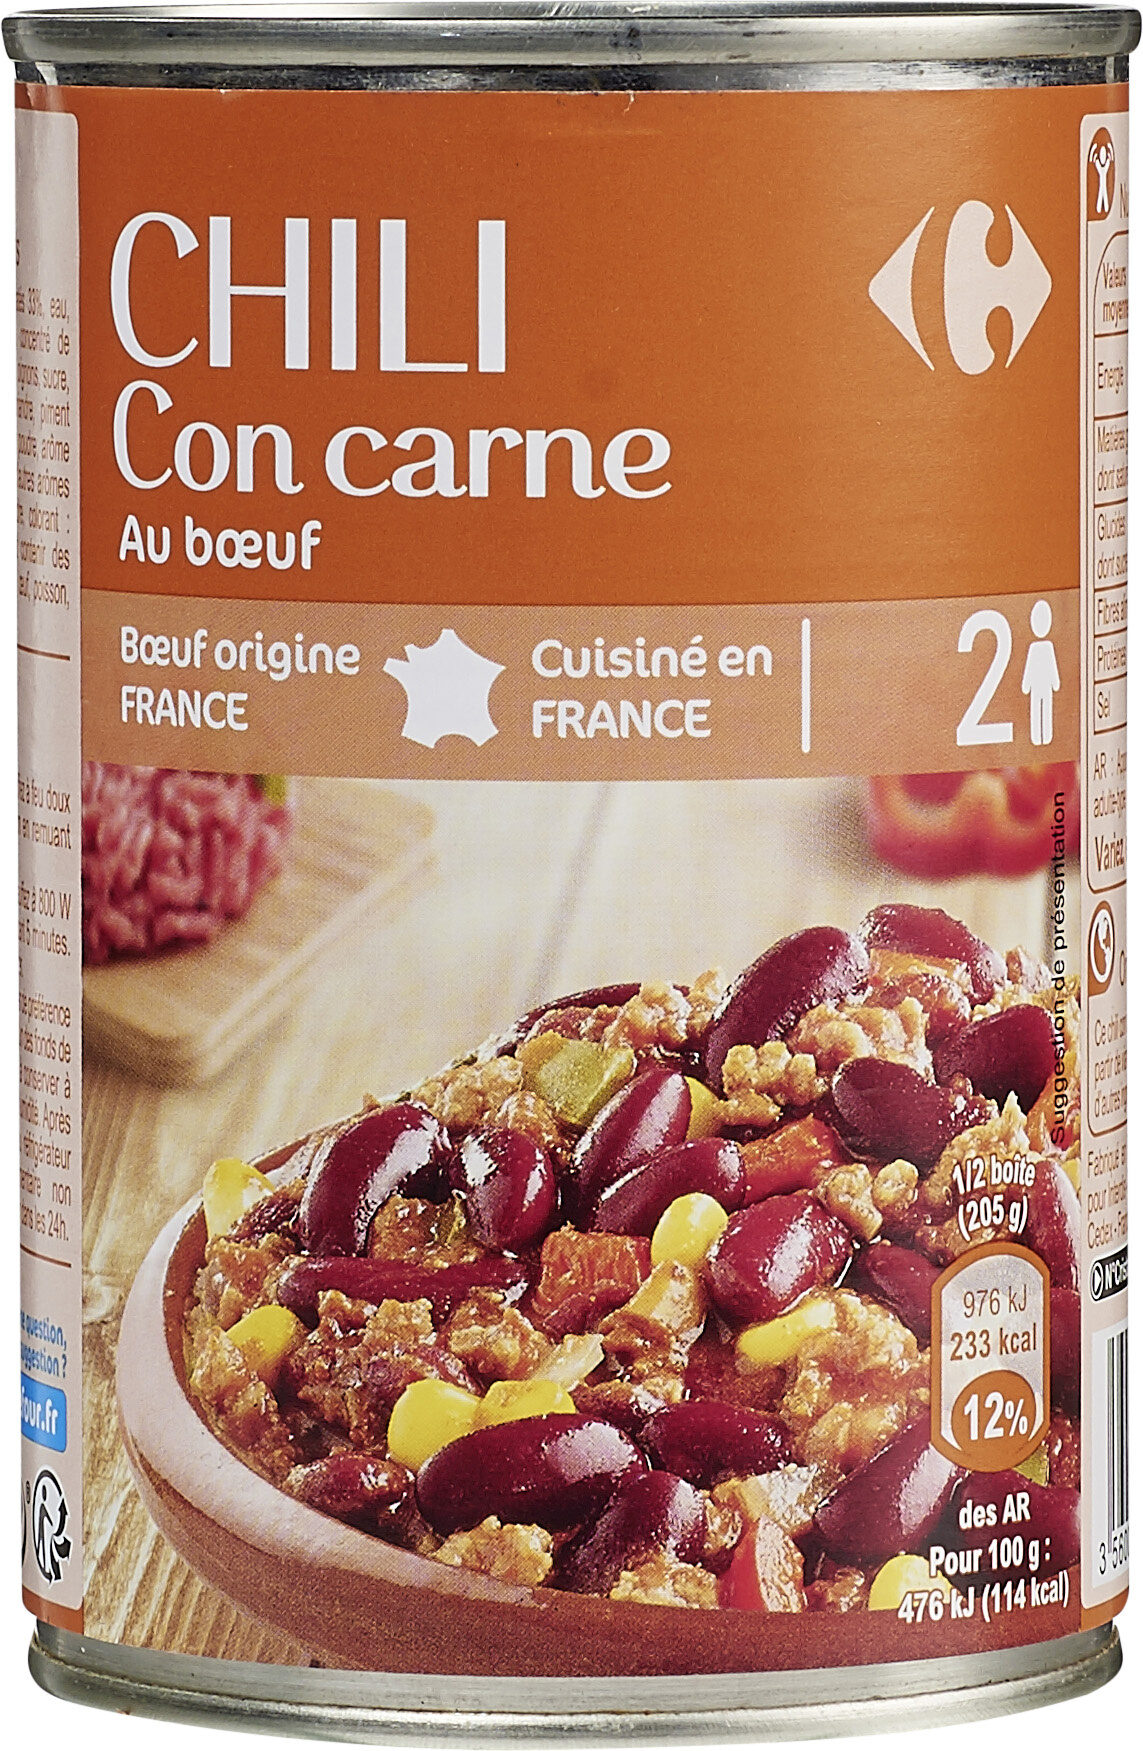 Chili con carne - Product - fr